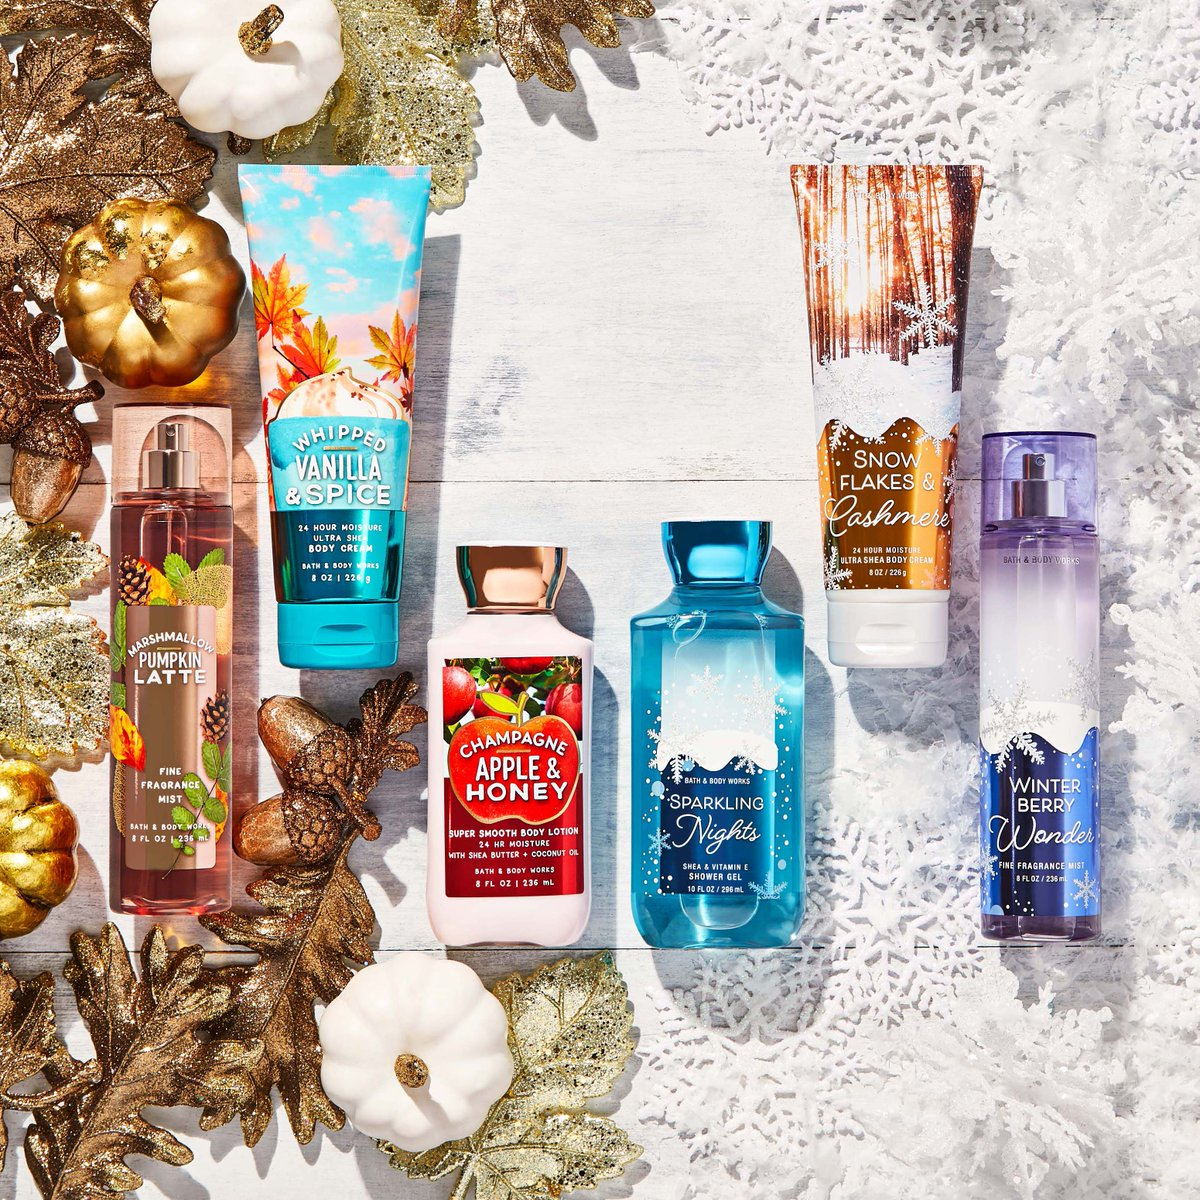 Bath Body Works On Twitter We Love Options Are You Team Fall Or Team Winter